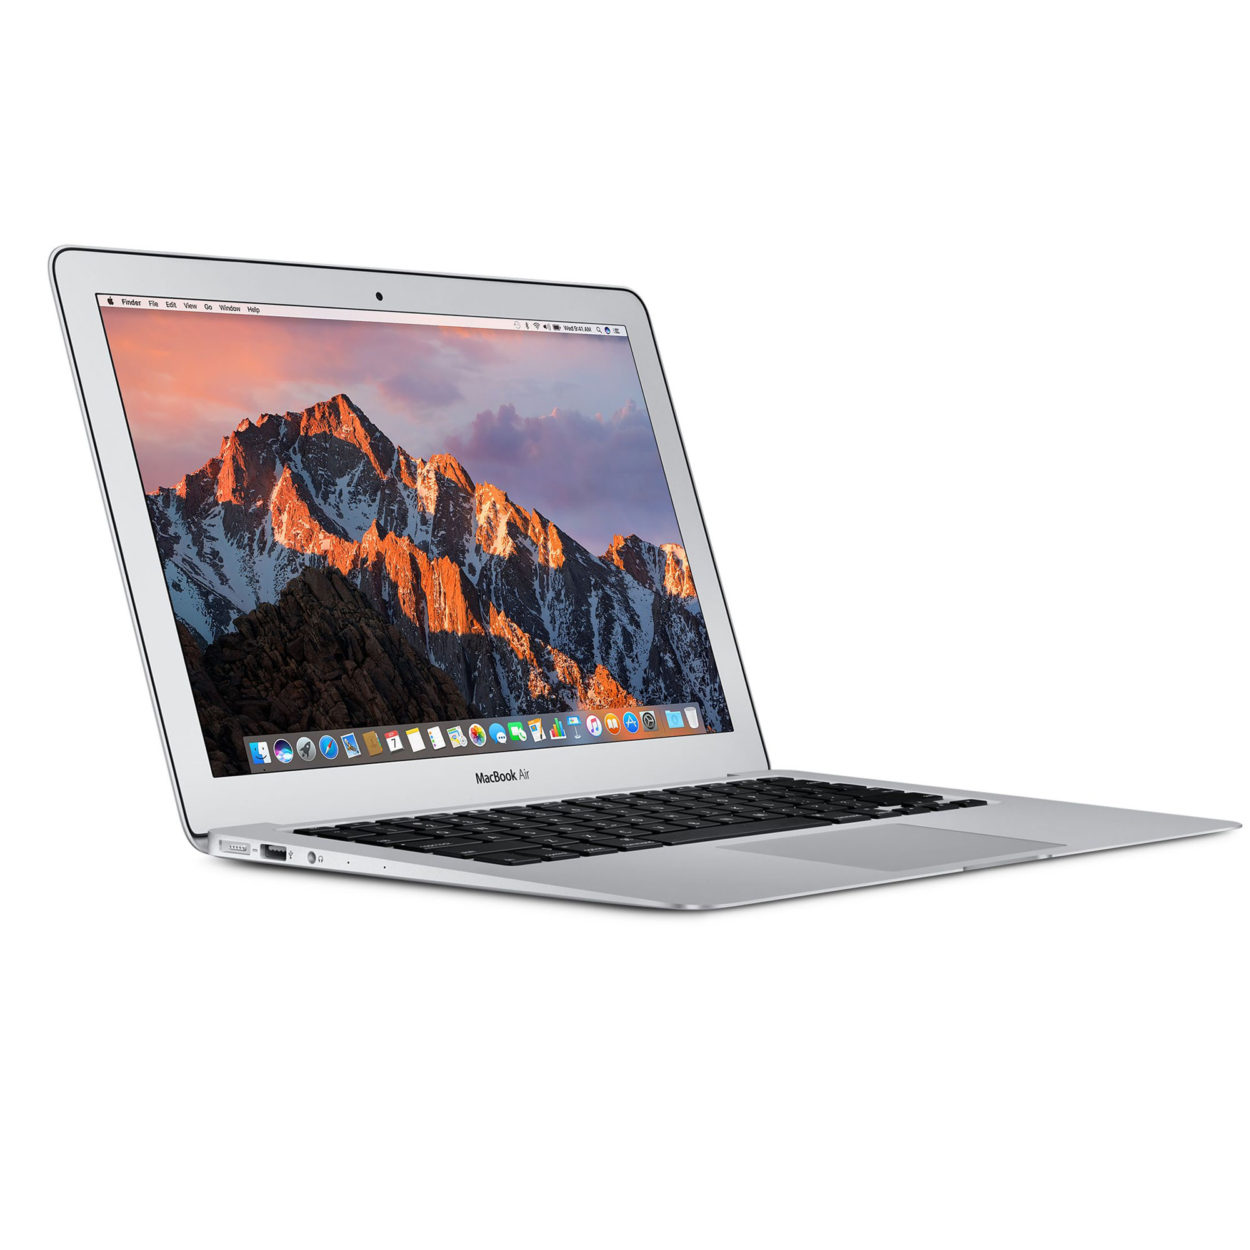 Best laptops that are perfect for video and photo editing in